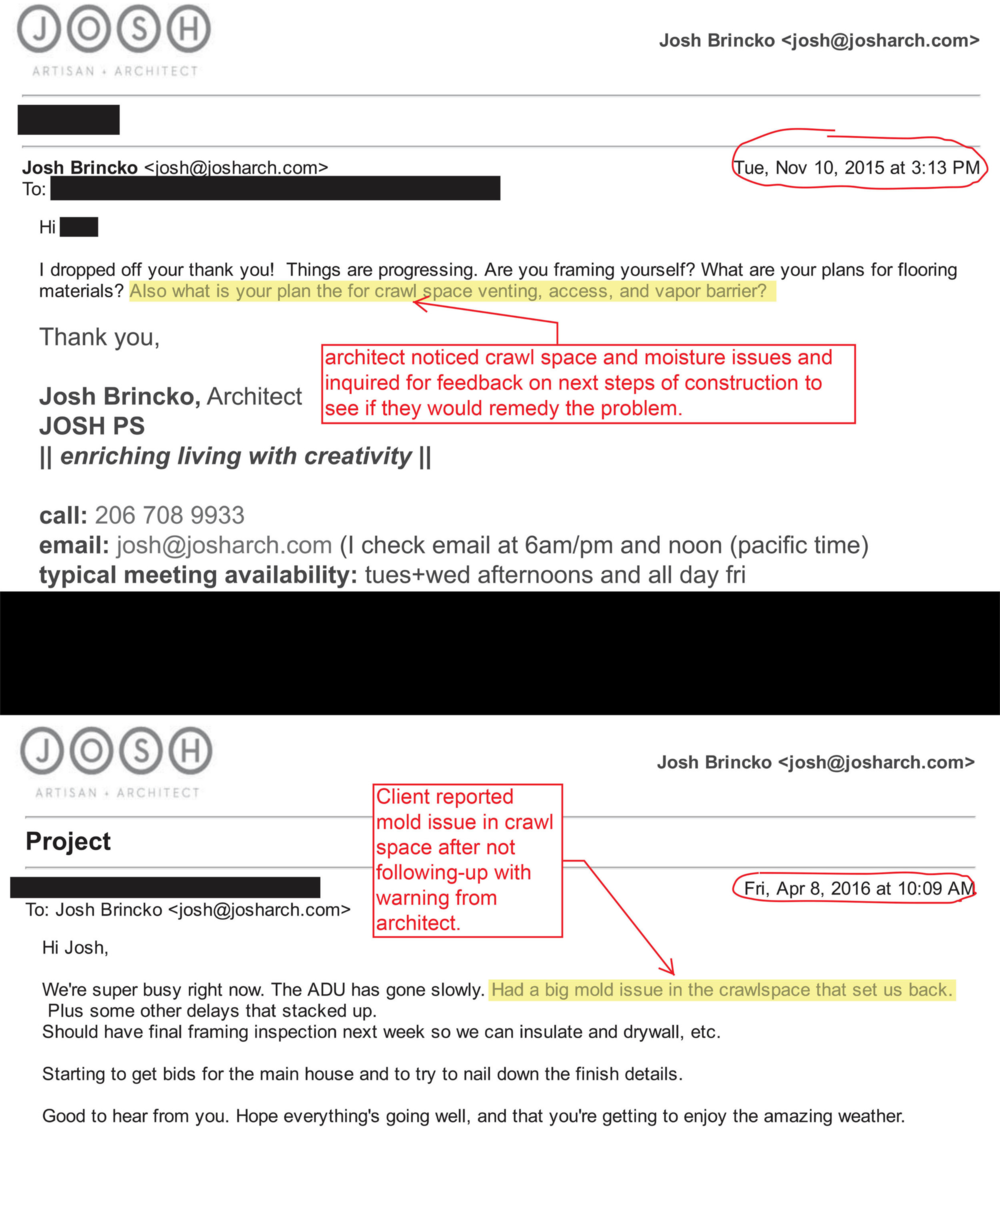 Here's an example email string between the architect and the client. The architect was inquiring about the construction progress after not hearing from the client for several months.